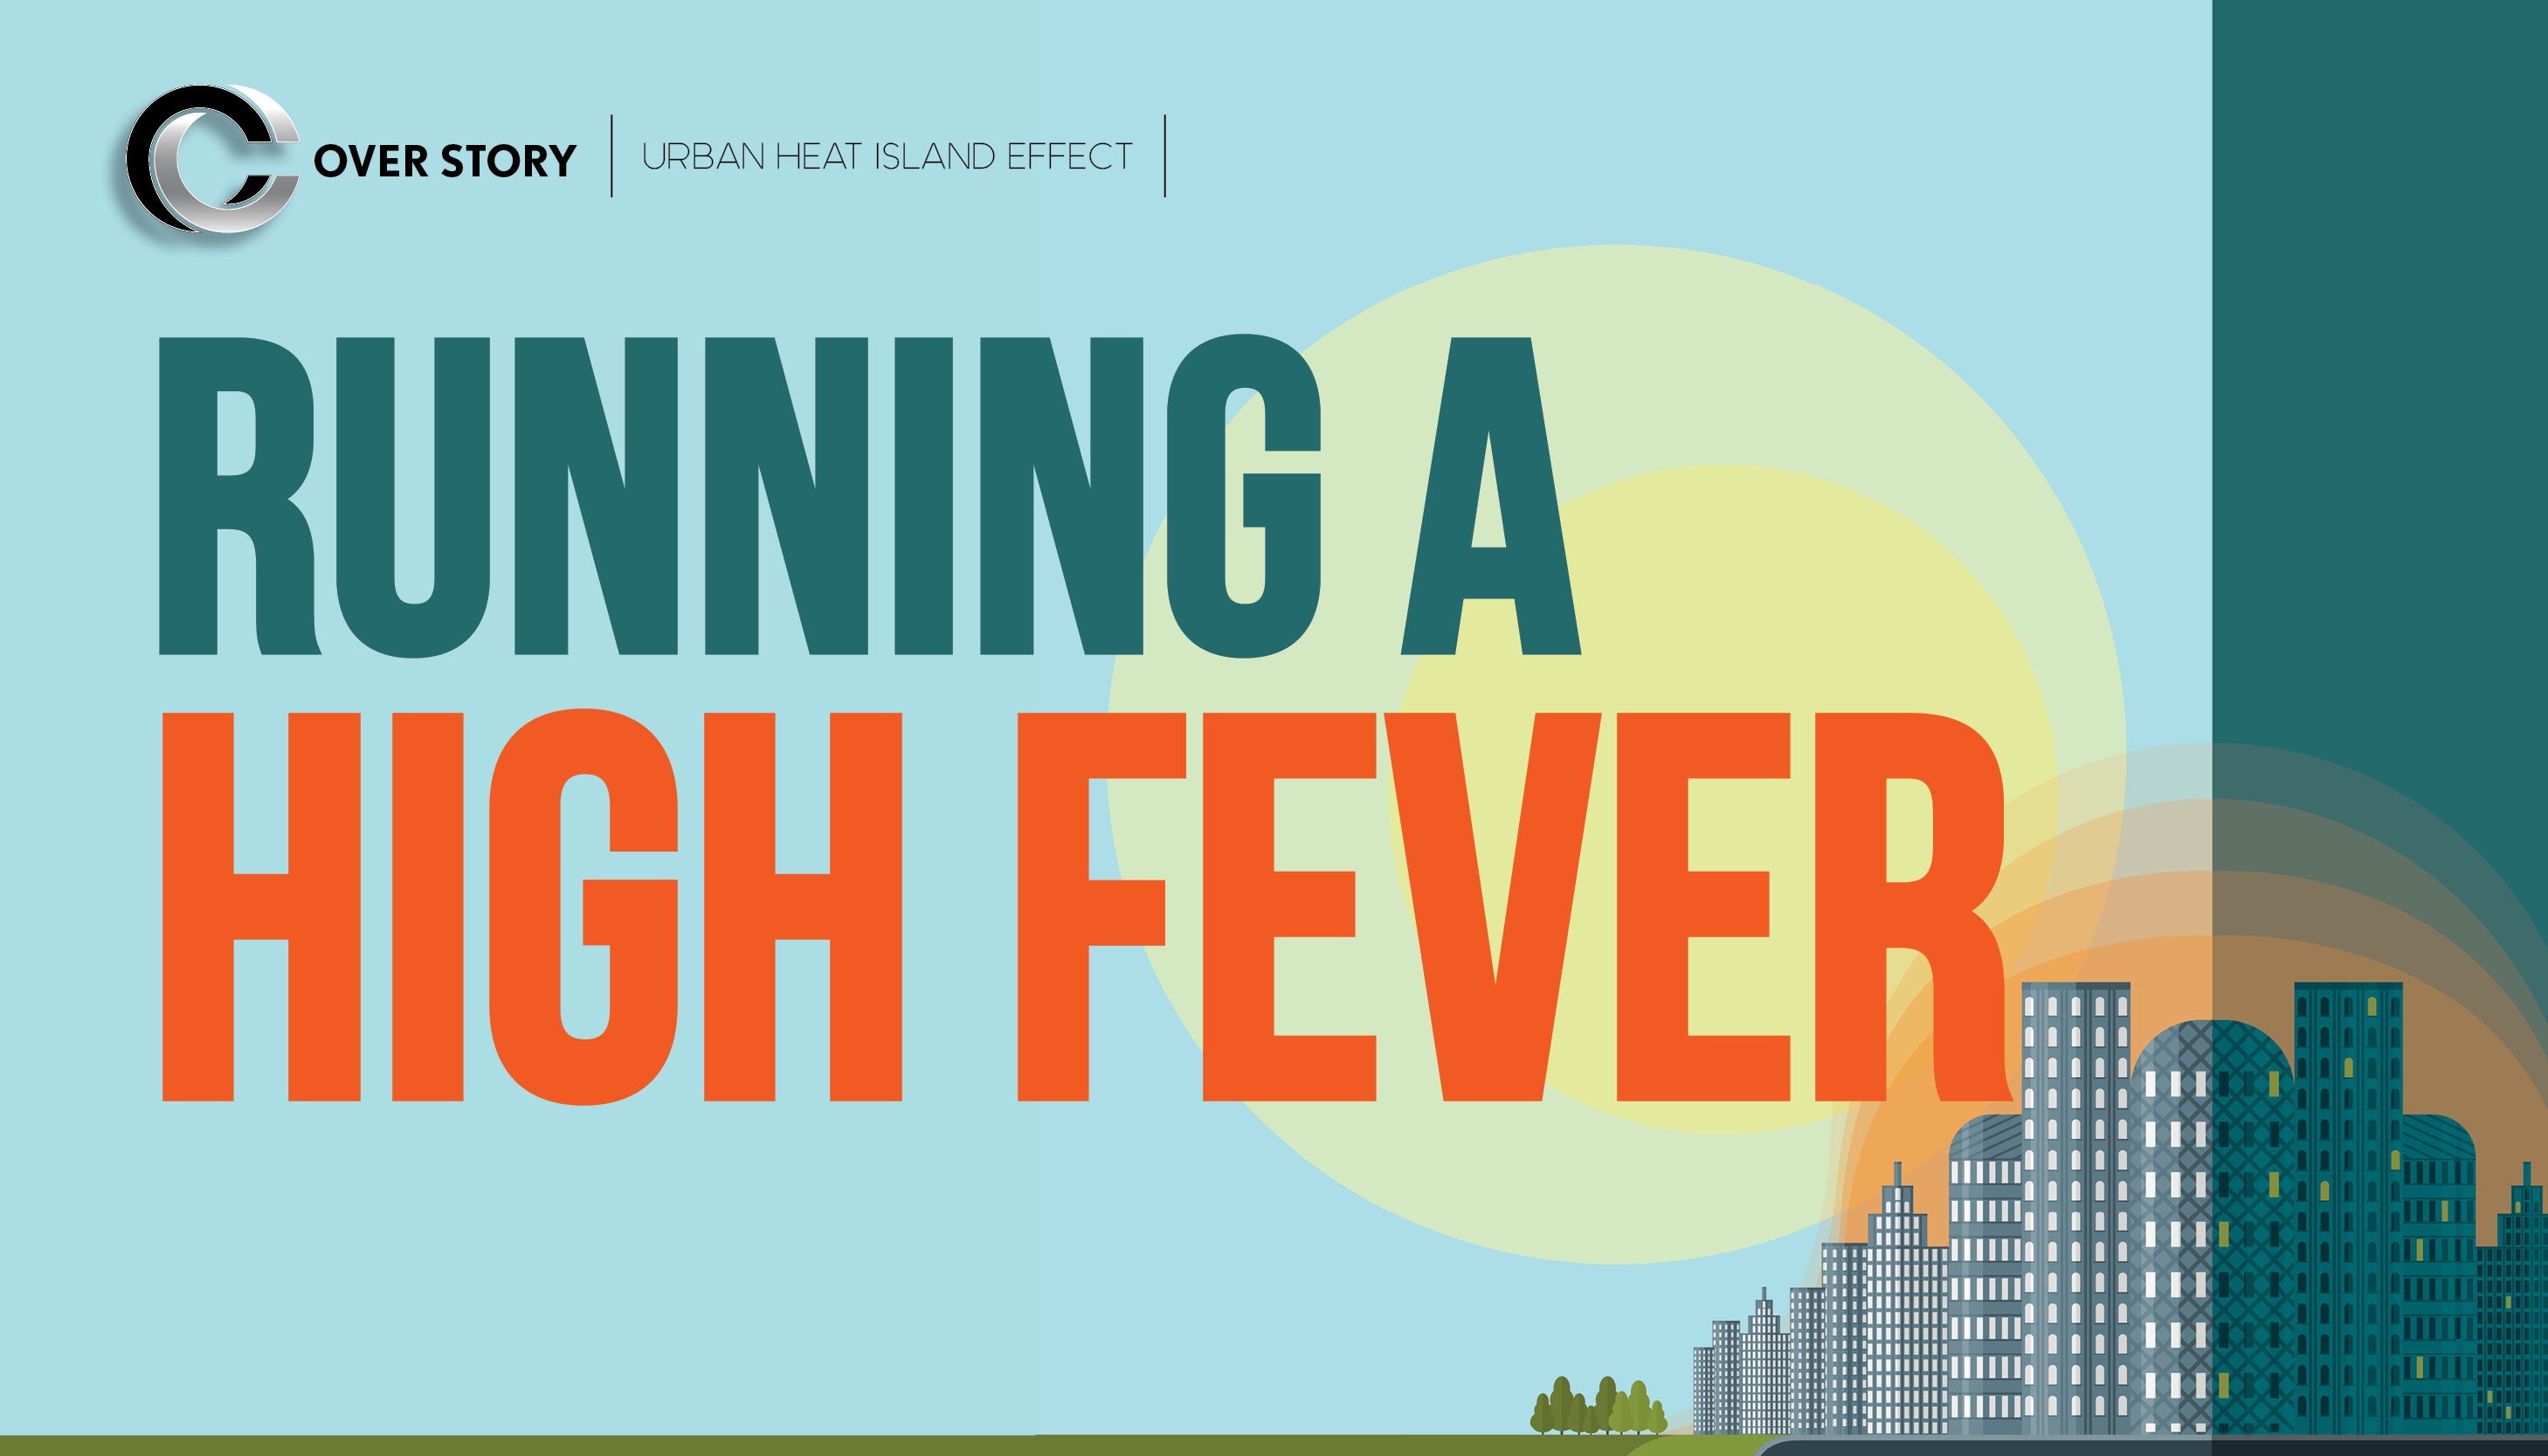 Running a high fever